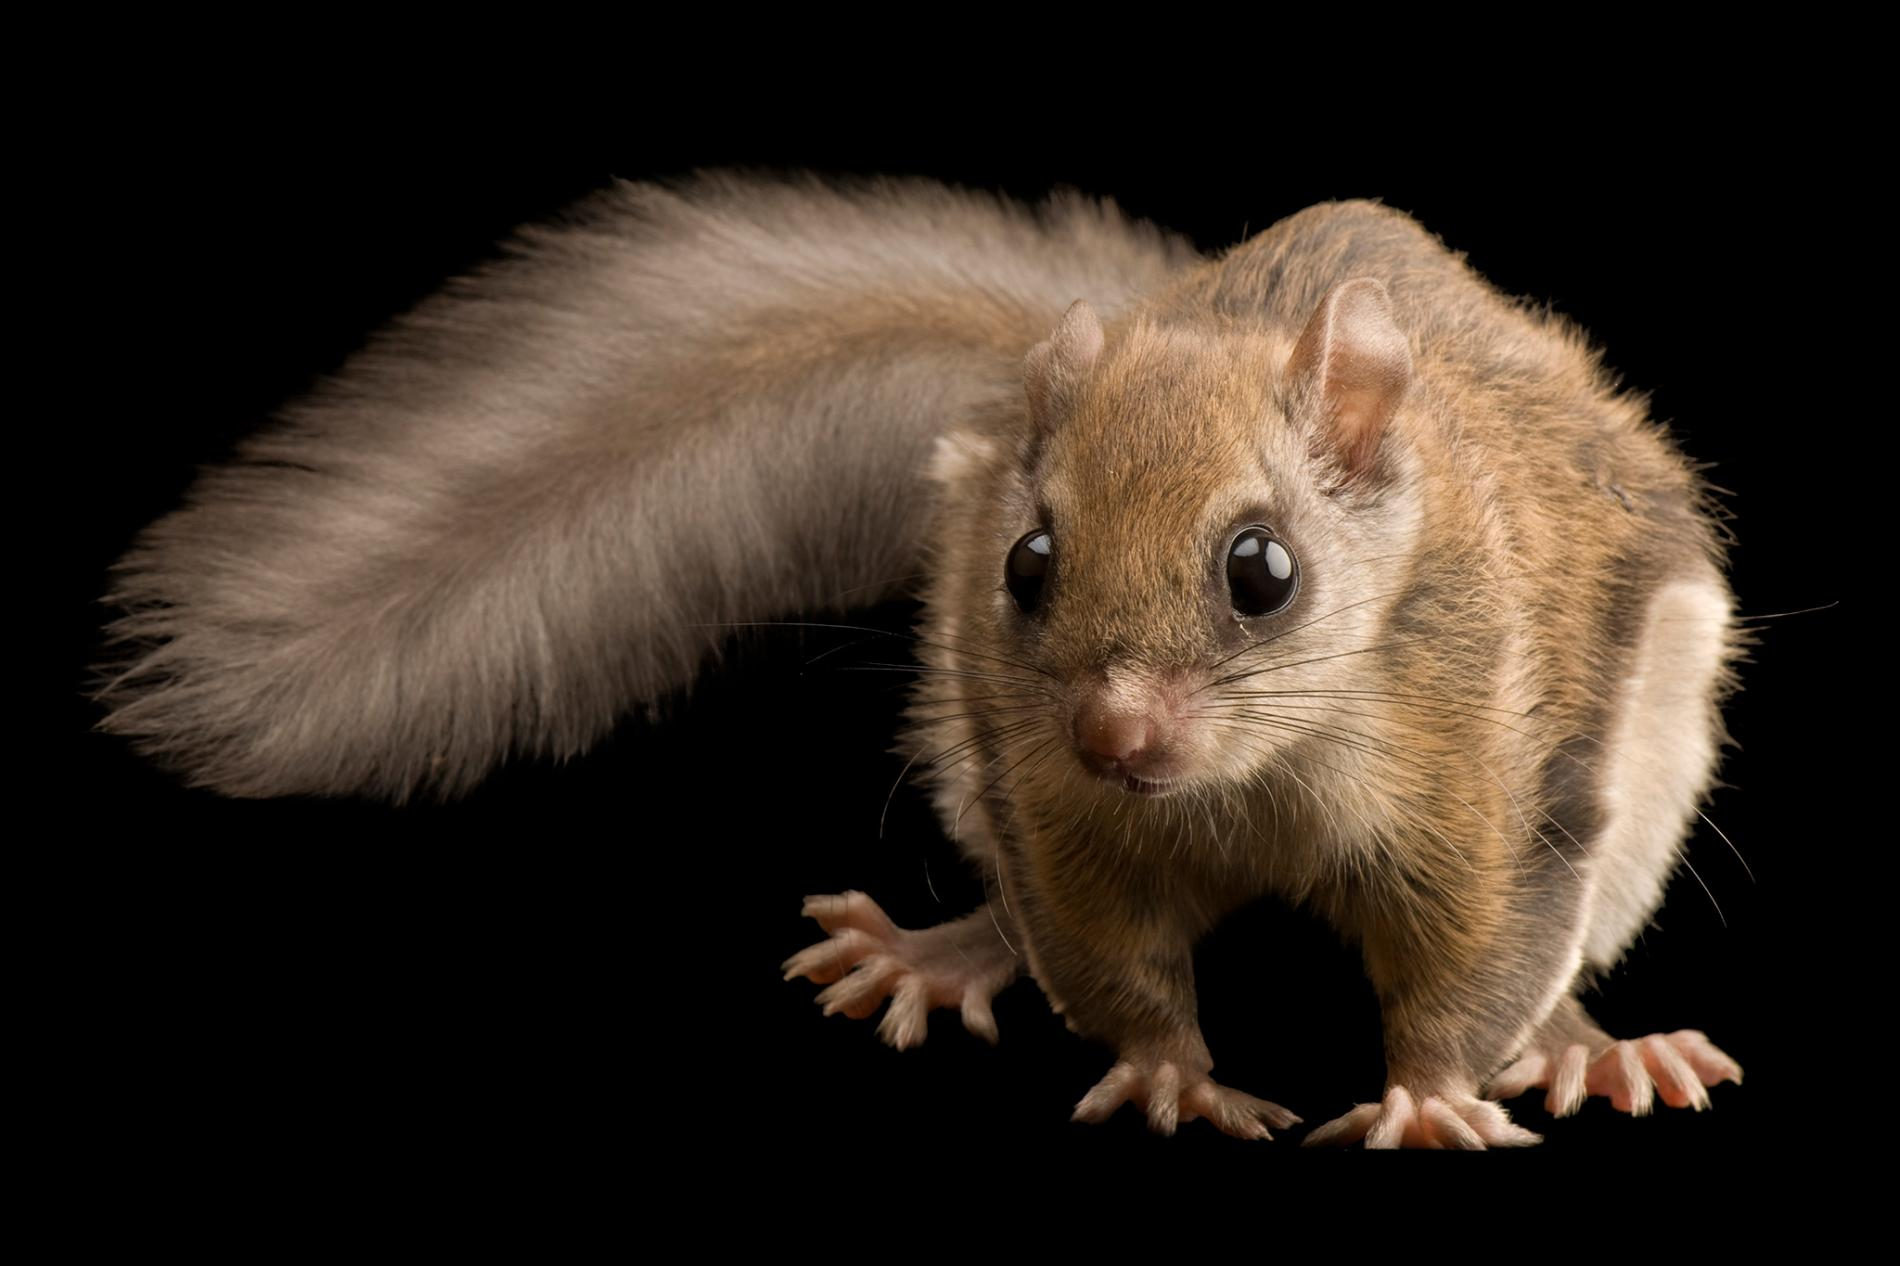 01-flying-squirrels-pink-nationalgeographic_1173072.ngsversion.1548934200593.adapt.1900.1